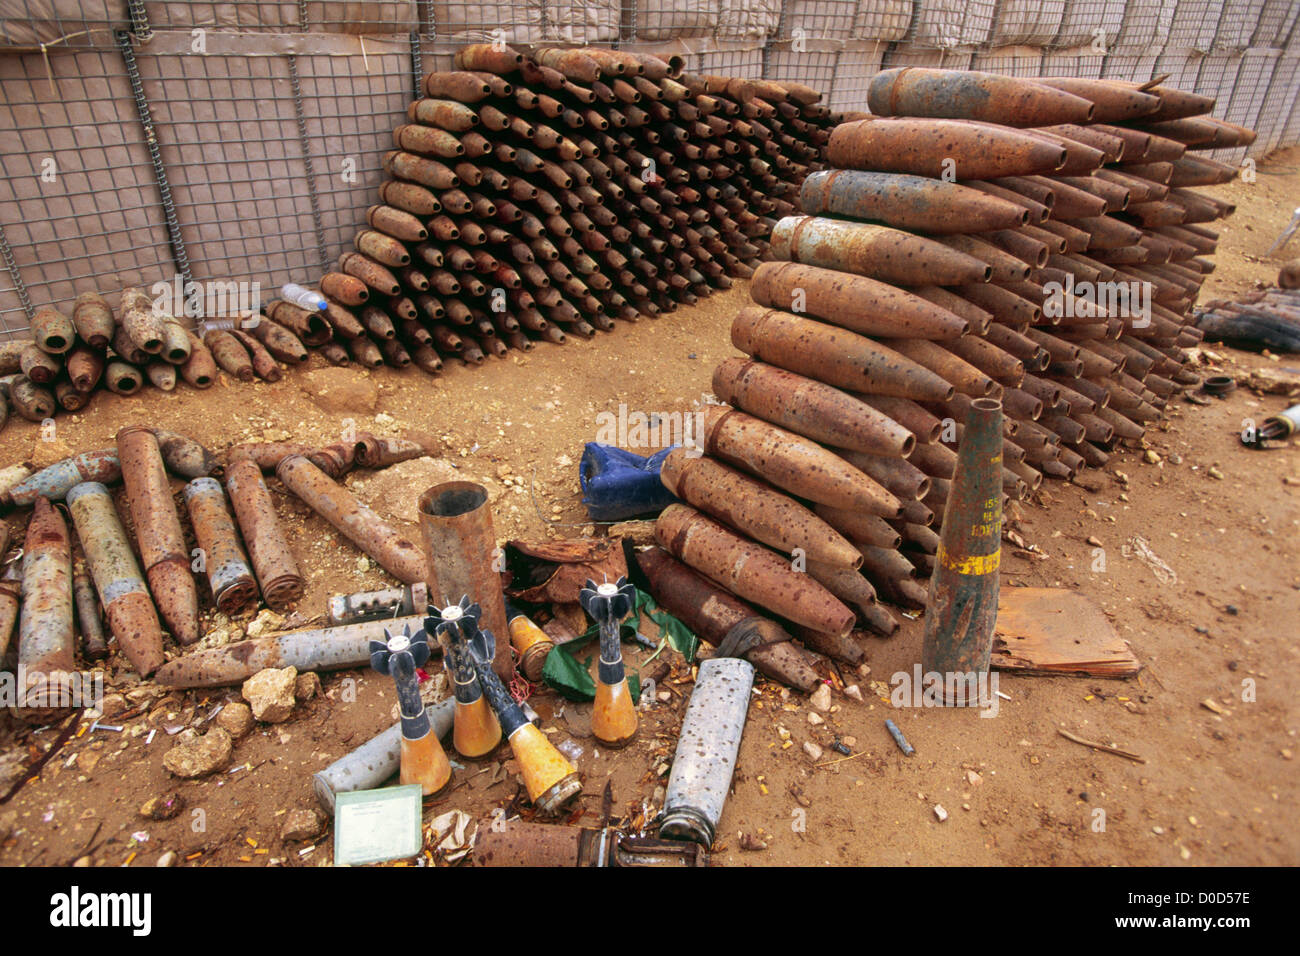 Captured Artillery Rounds, Mortar Rounds, and Equipment